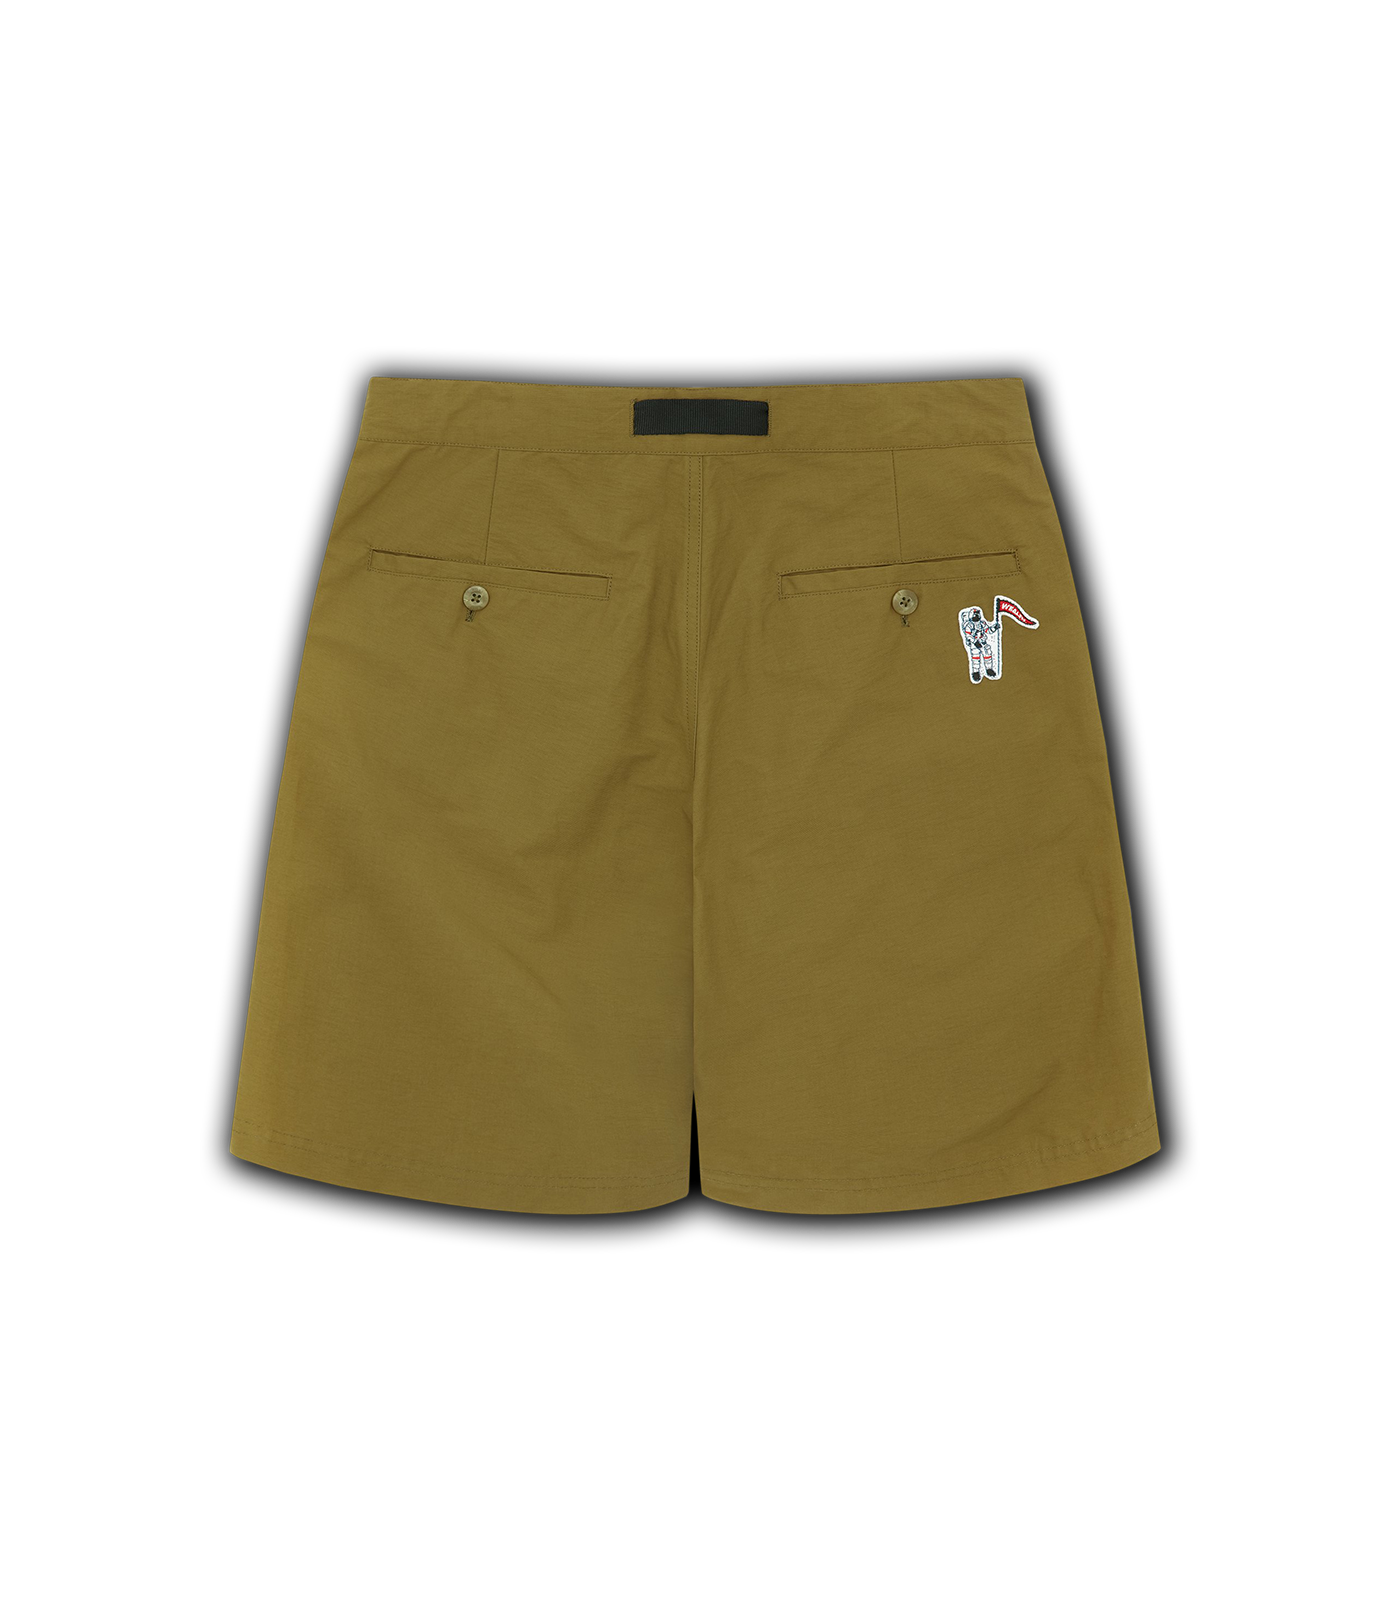 ZIP POCKET SHORTS - BEIGE